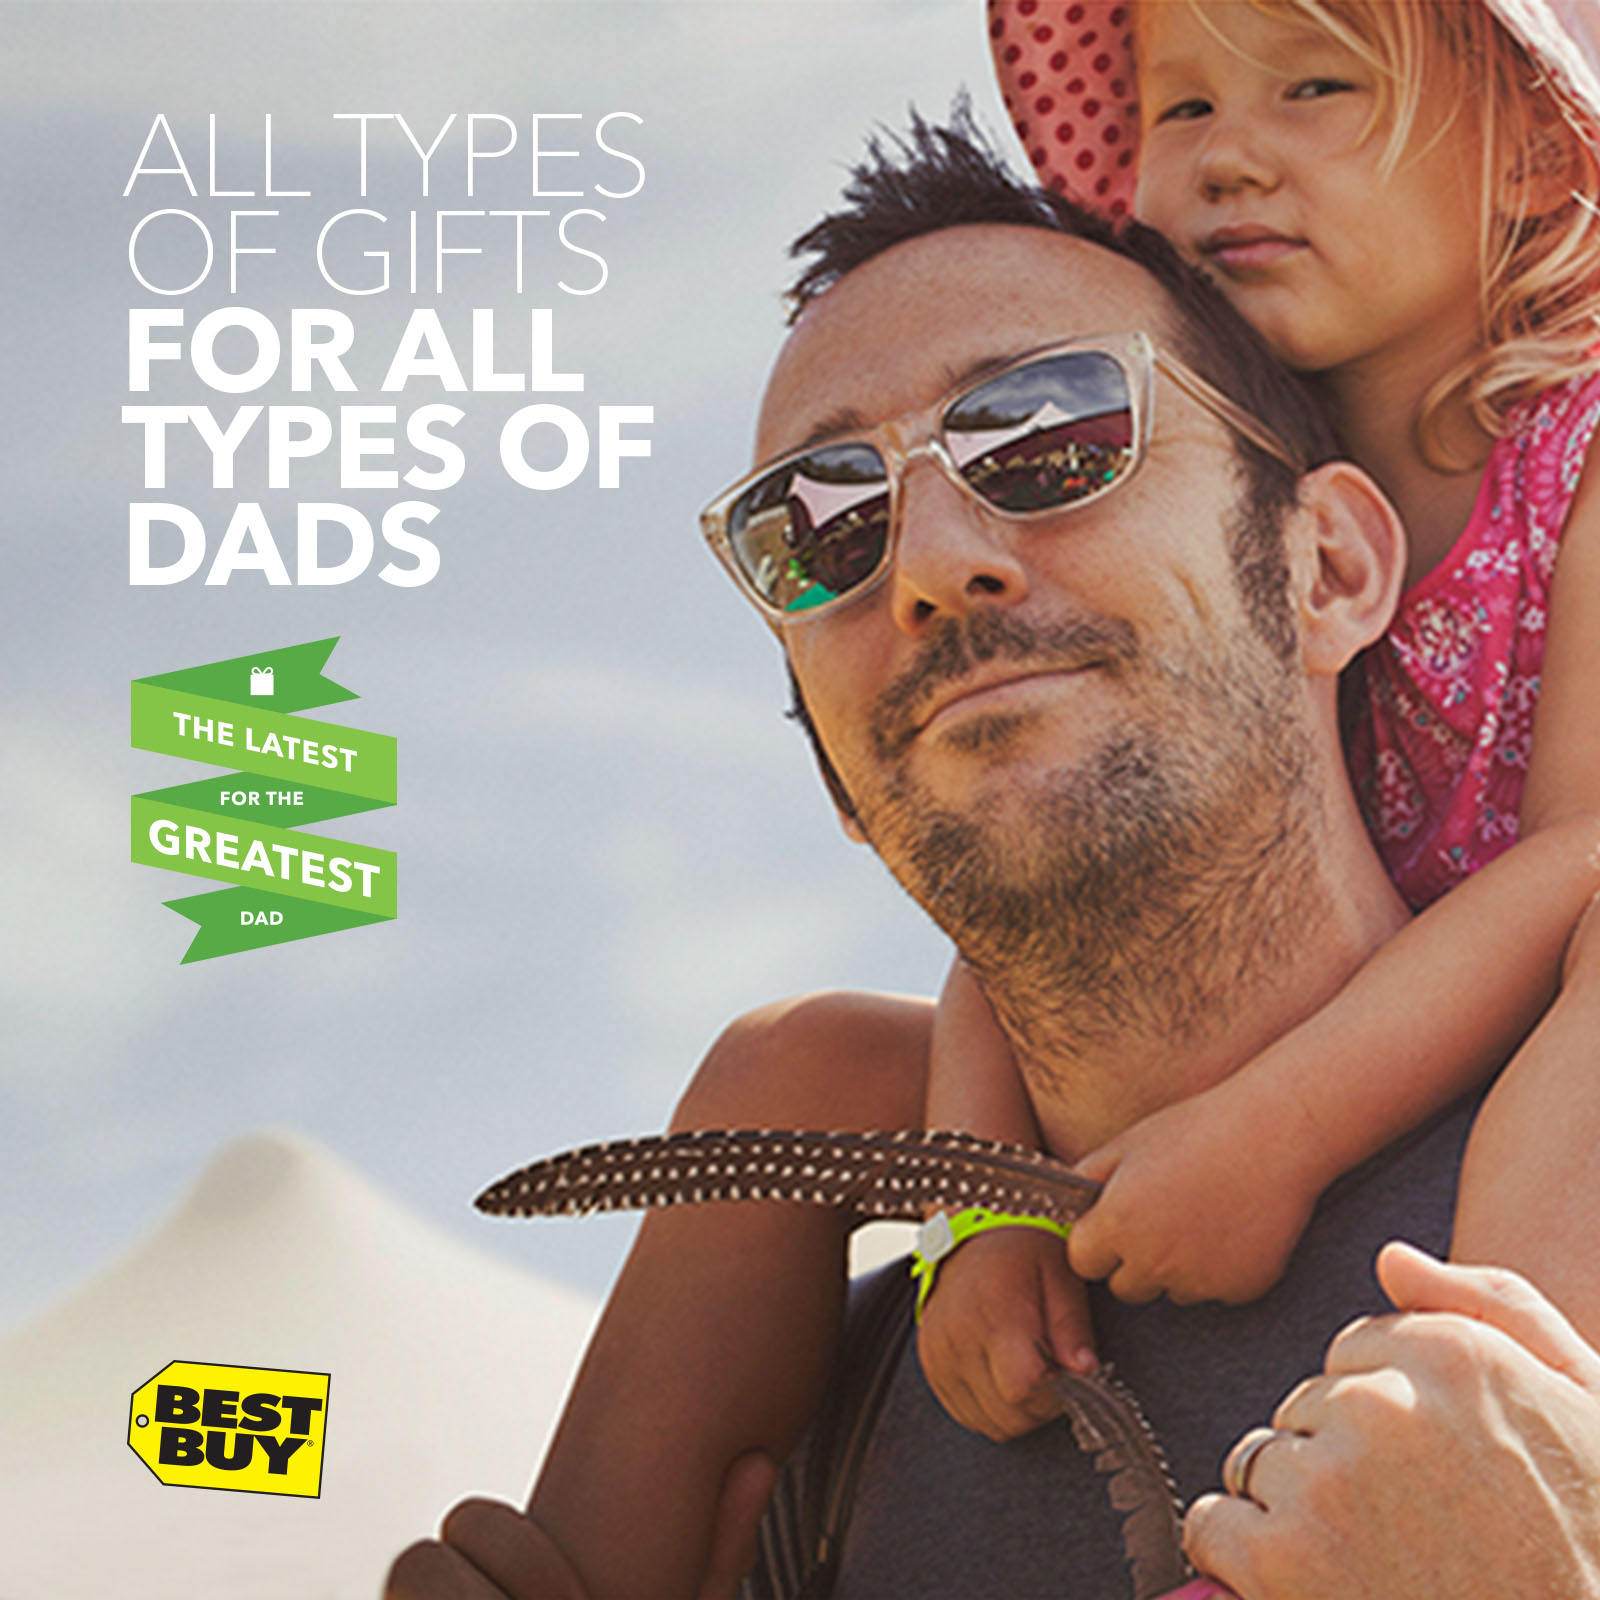 Need a Gift for Dad? Head to Best Buy